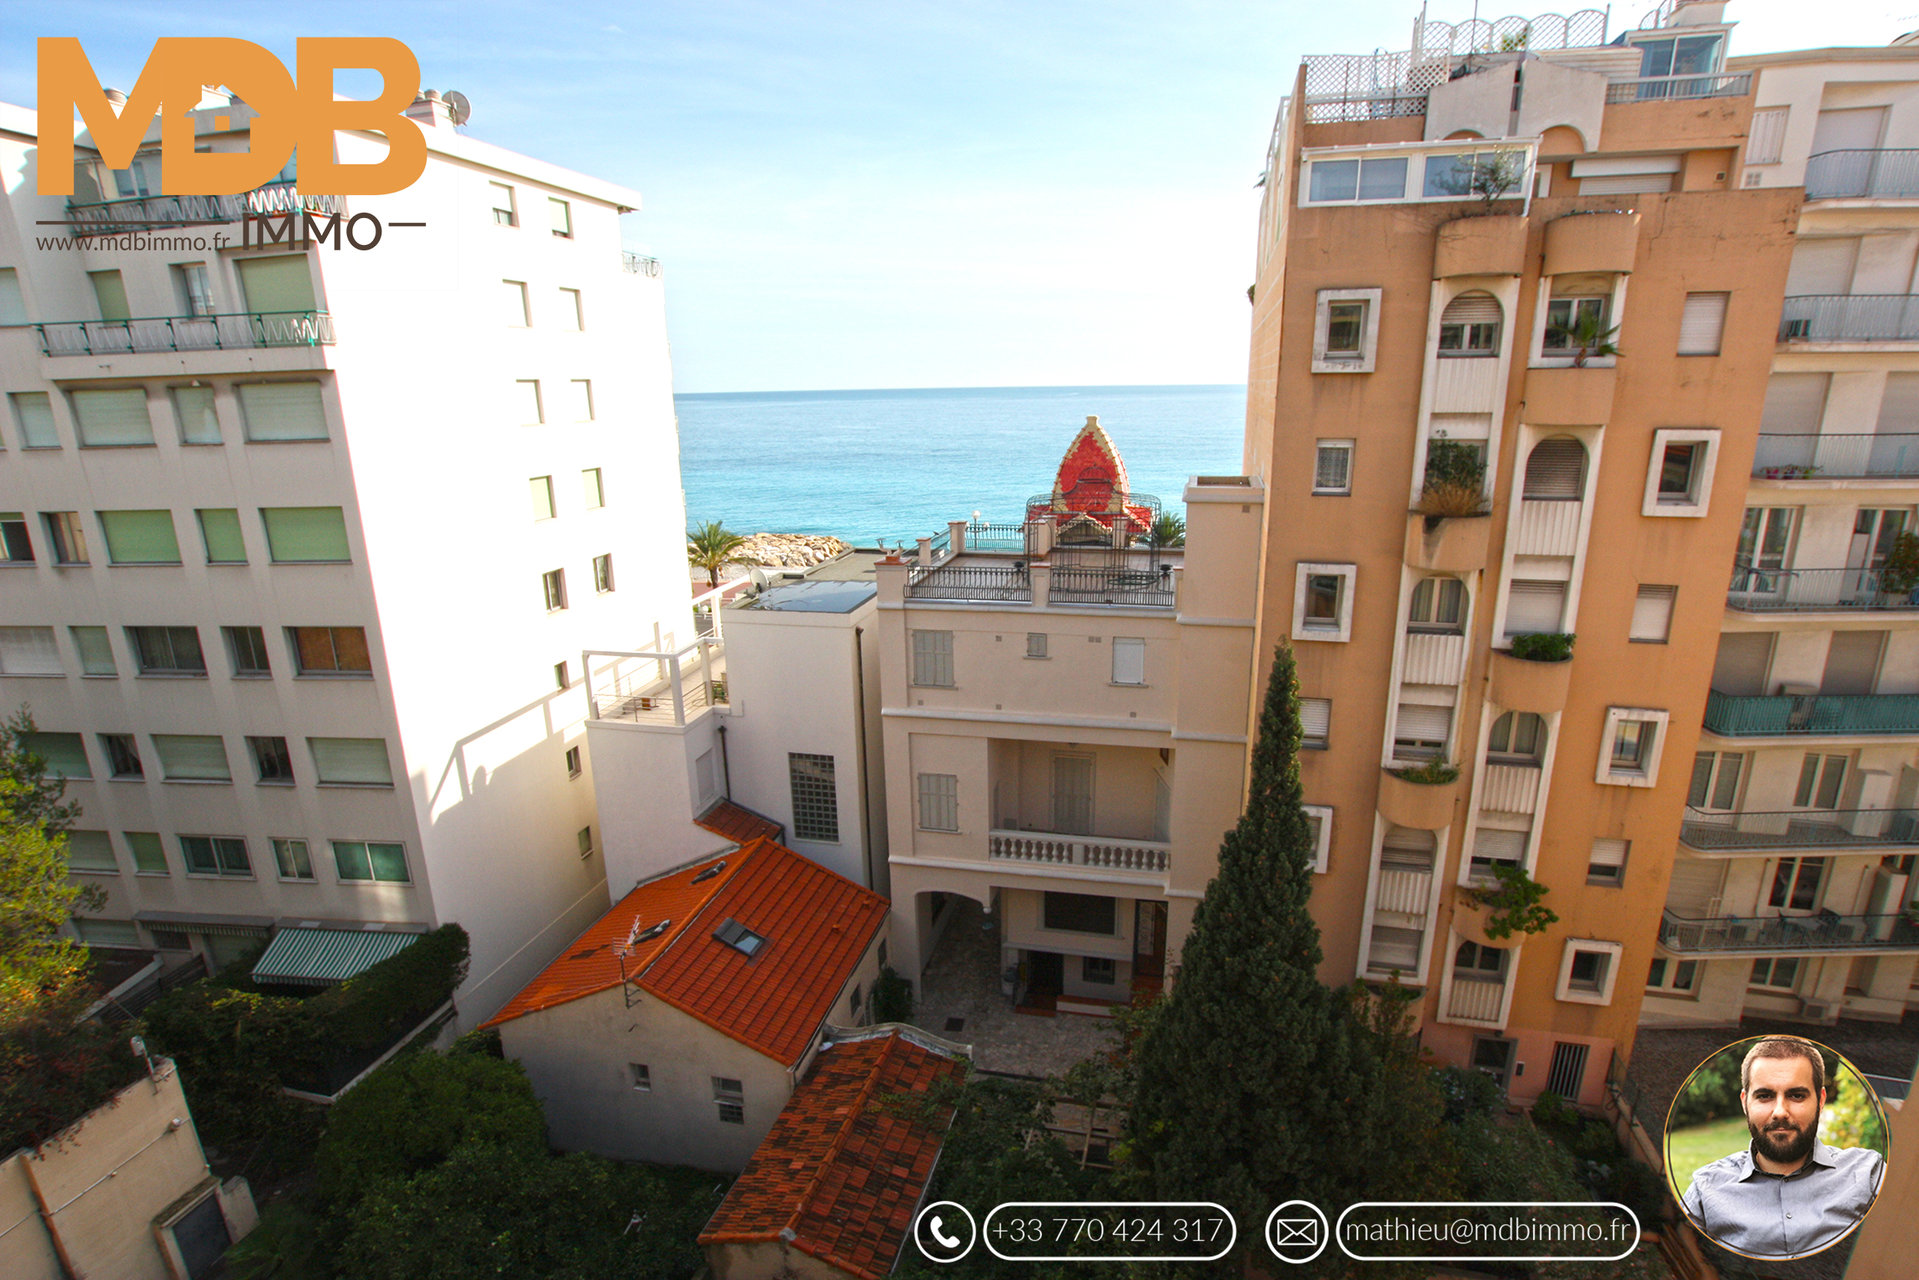 Nice - Promenade des anglais - 3P - Terrace - Sea view - South exposure - High floor